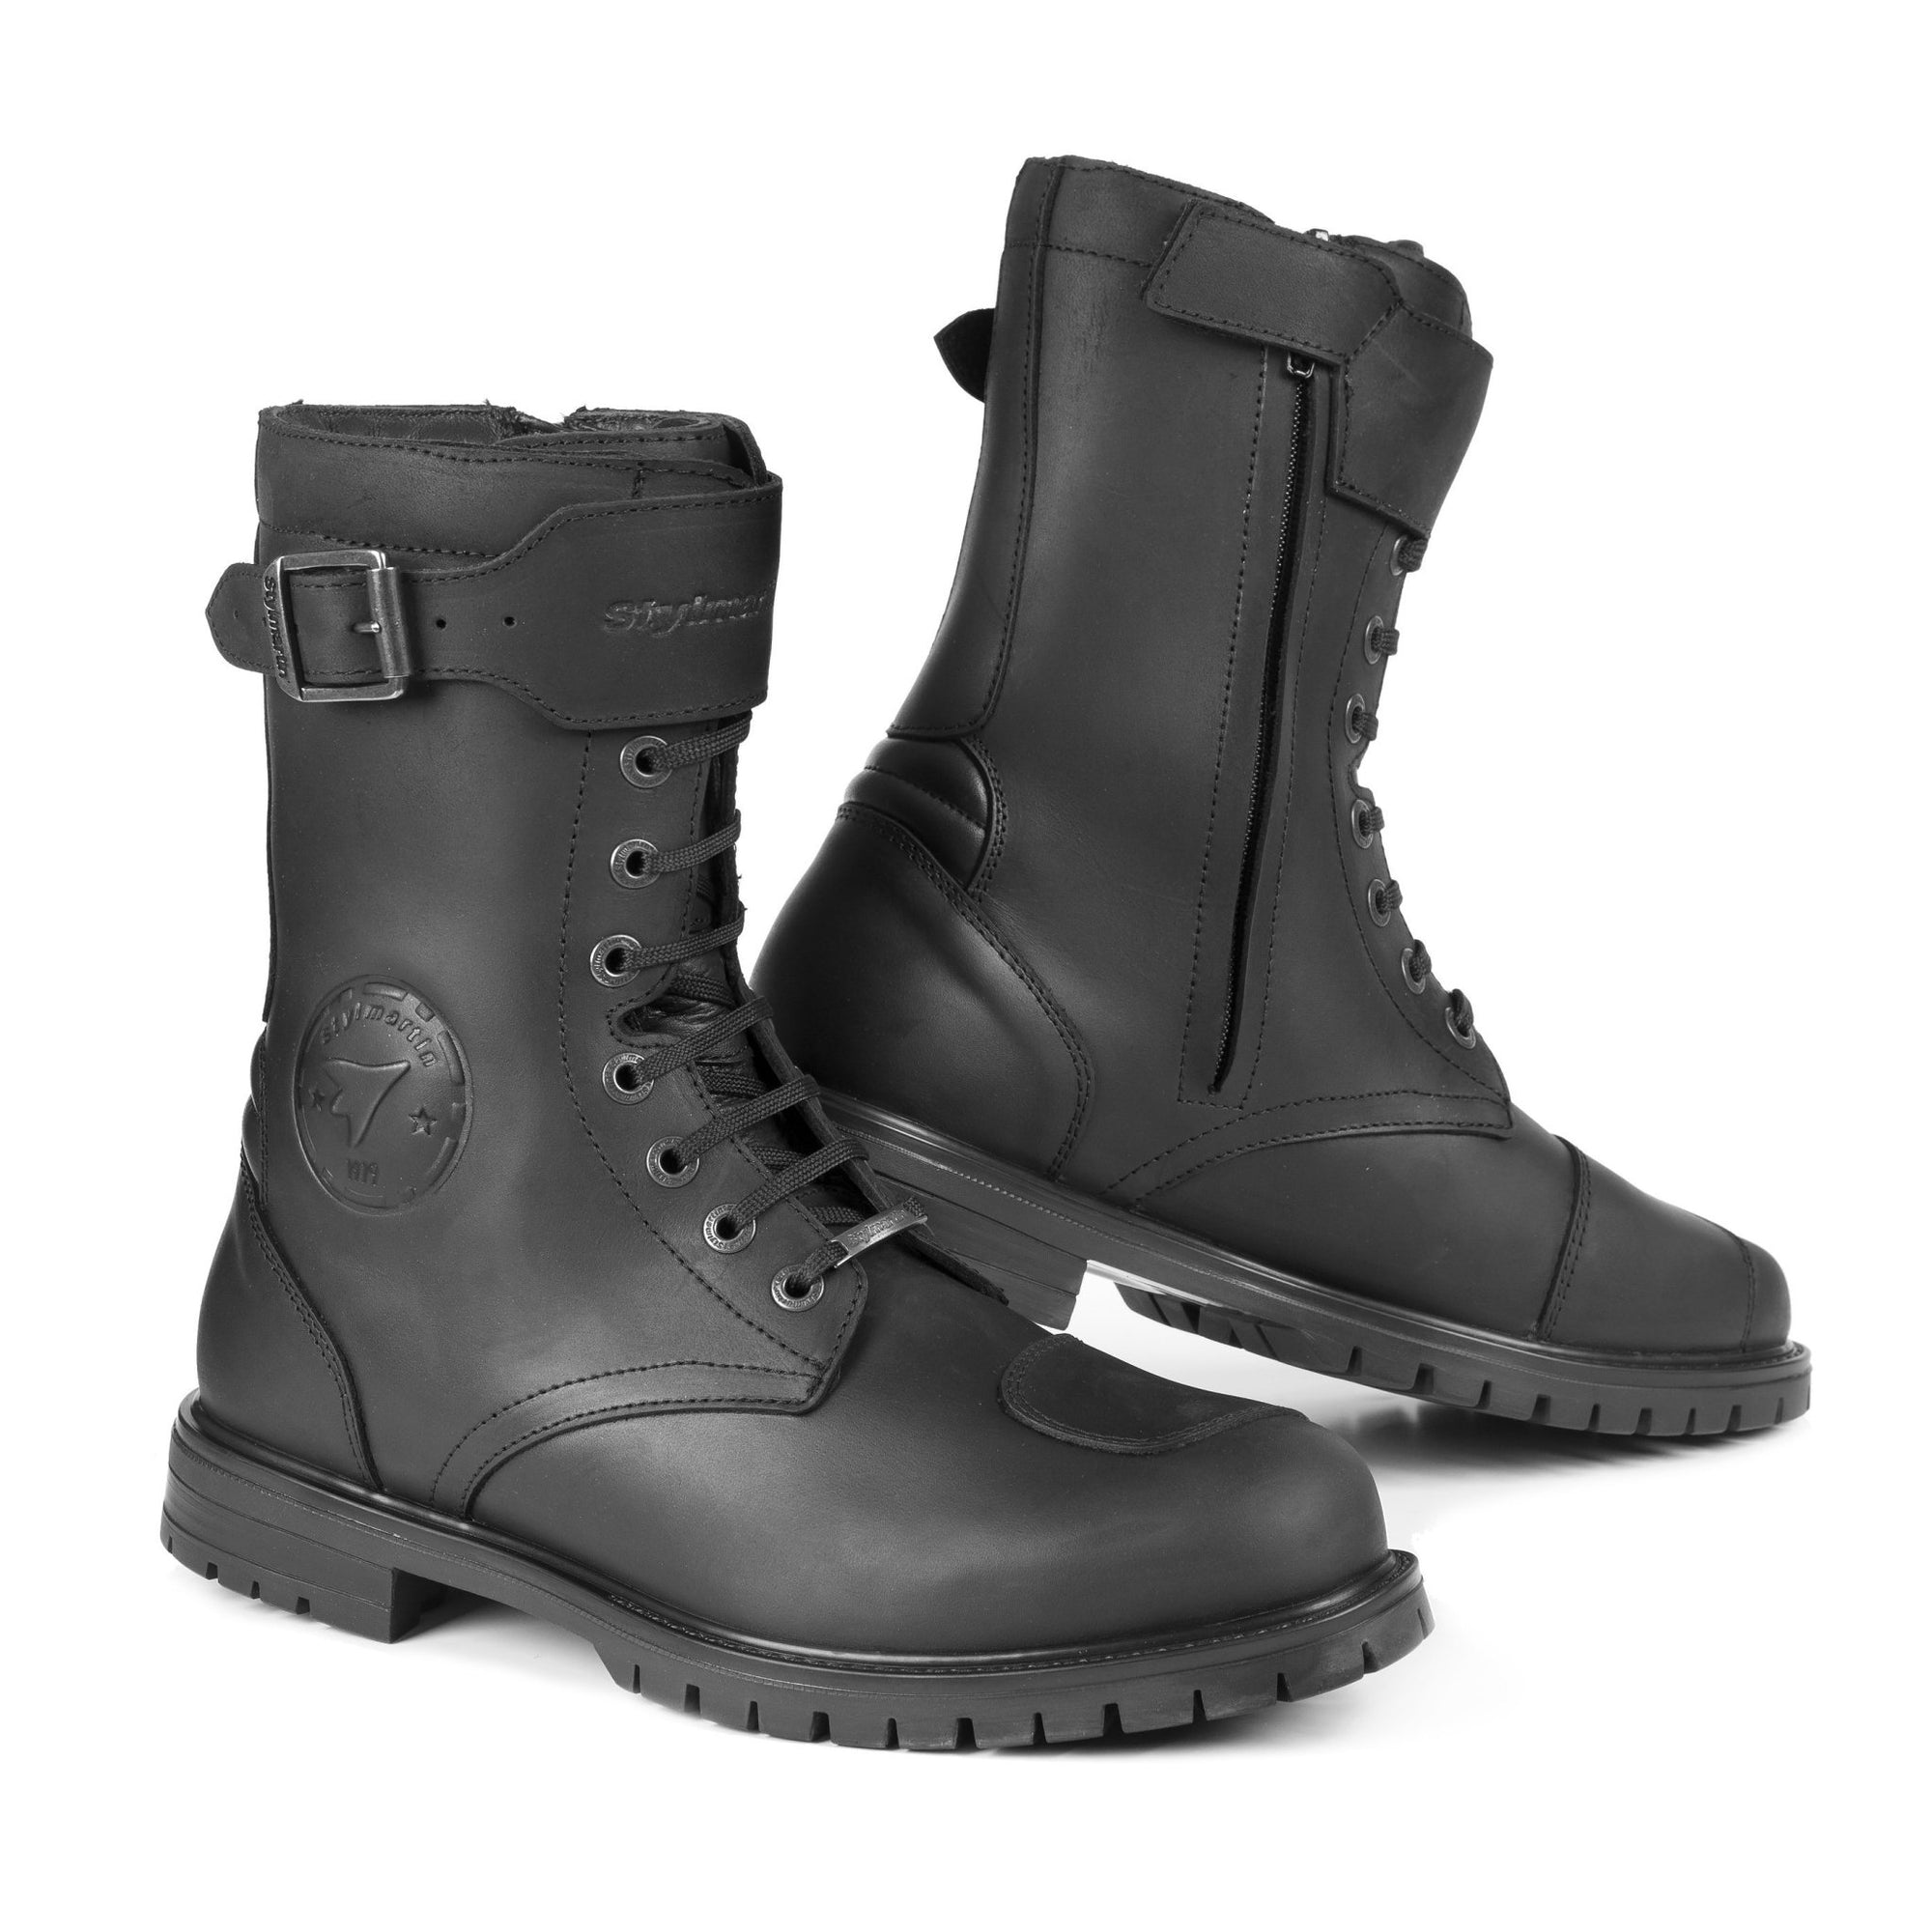 Stylmartin - Stylmartin Rocket WP Urban in Black - Boots - Salt Flats Clothing